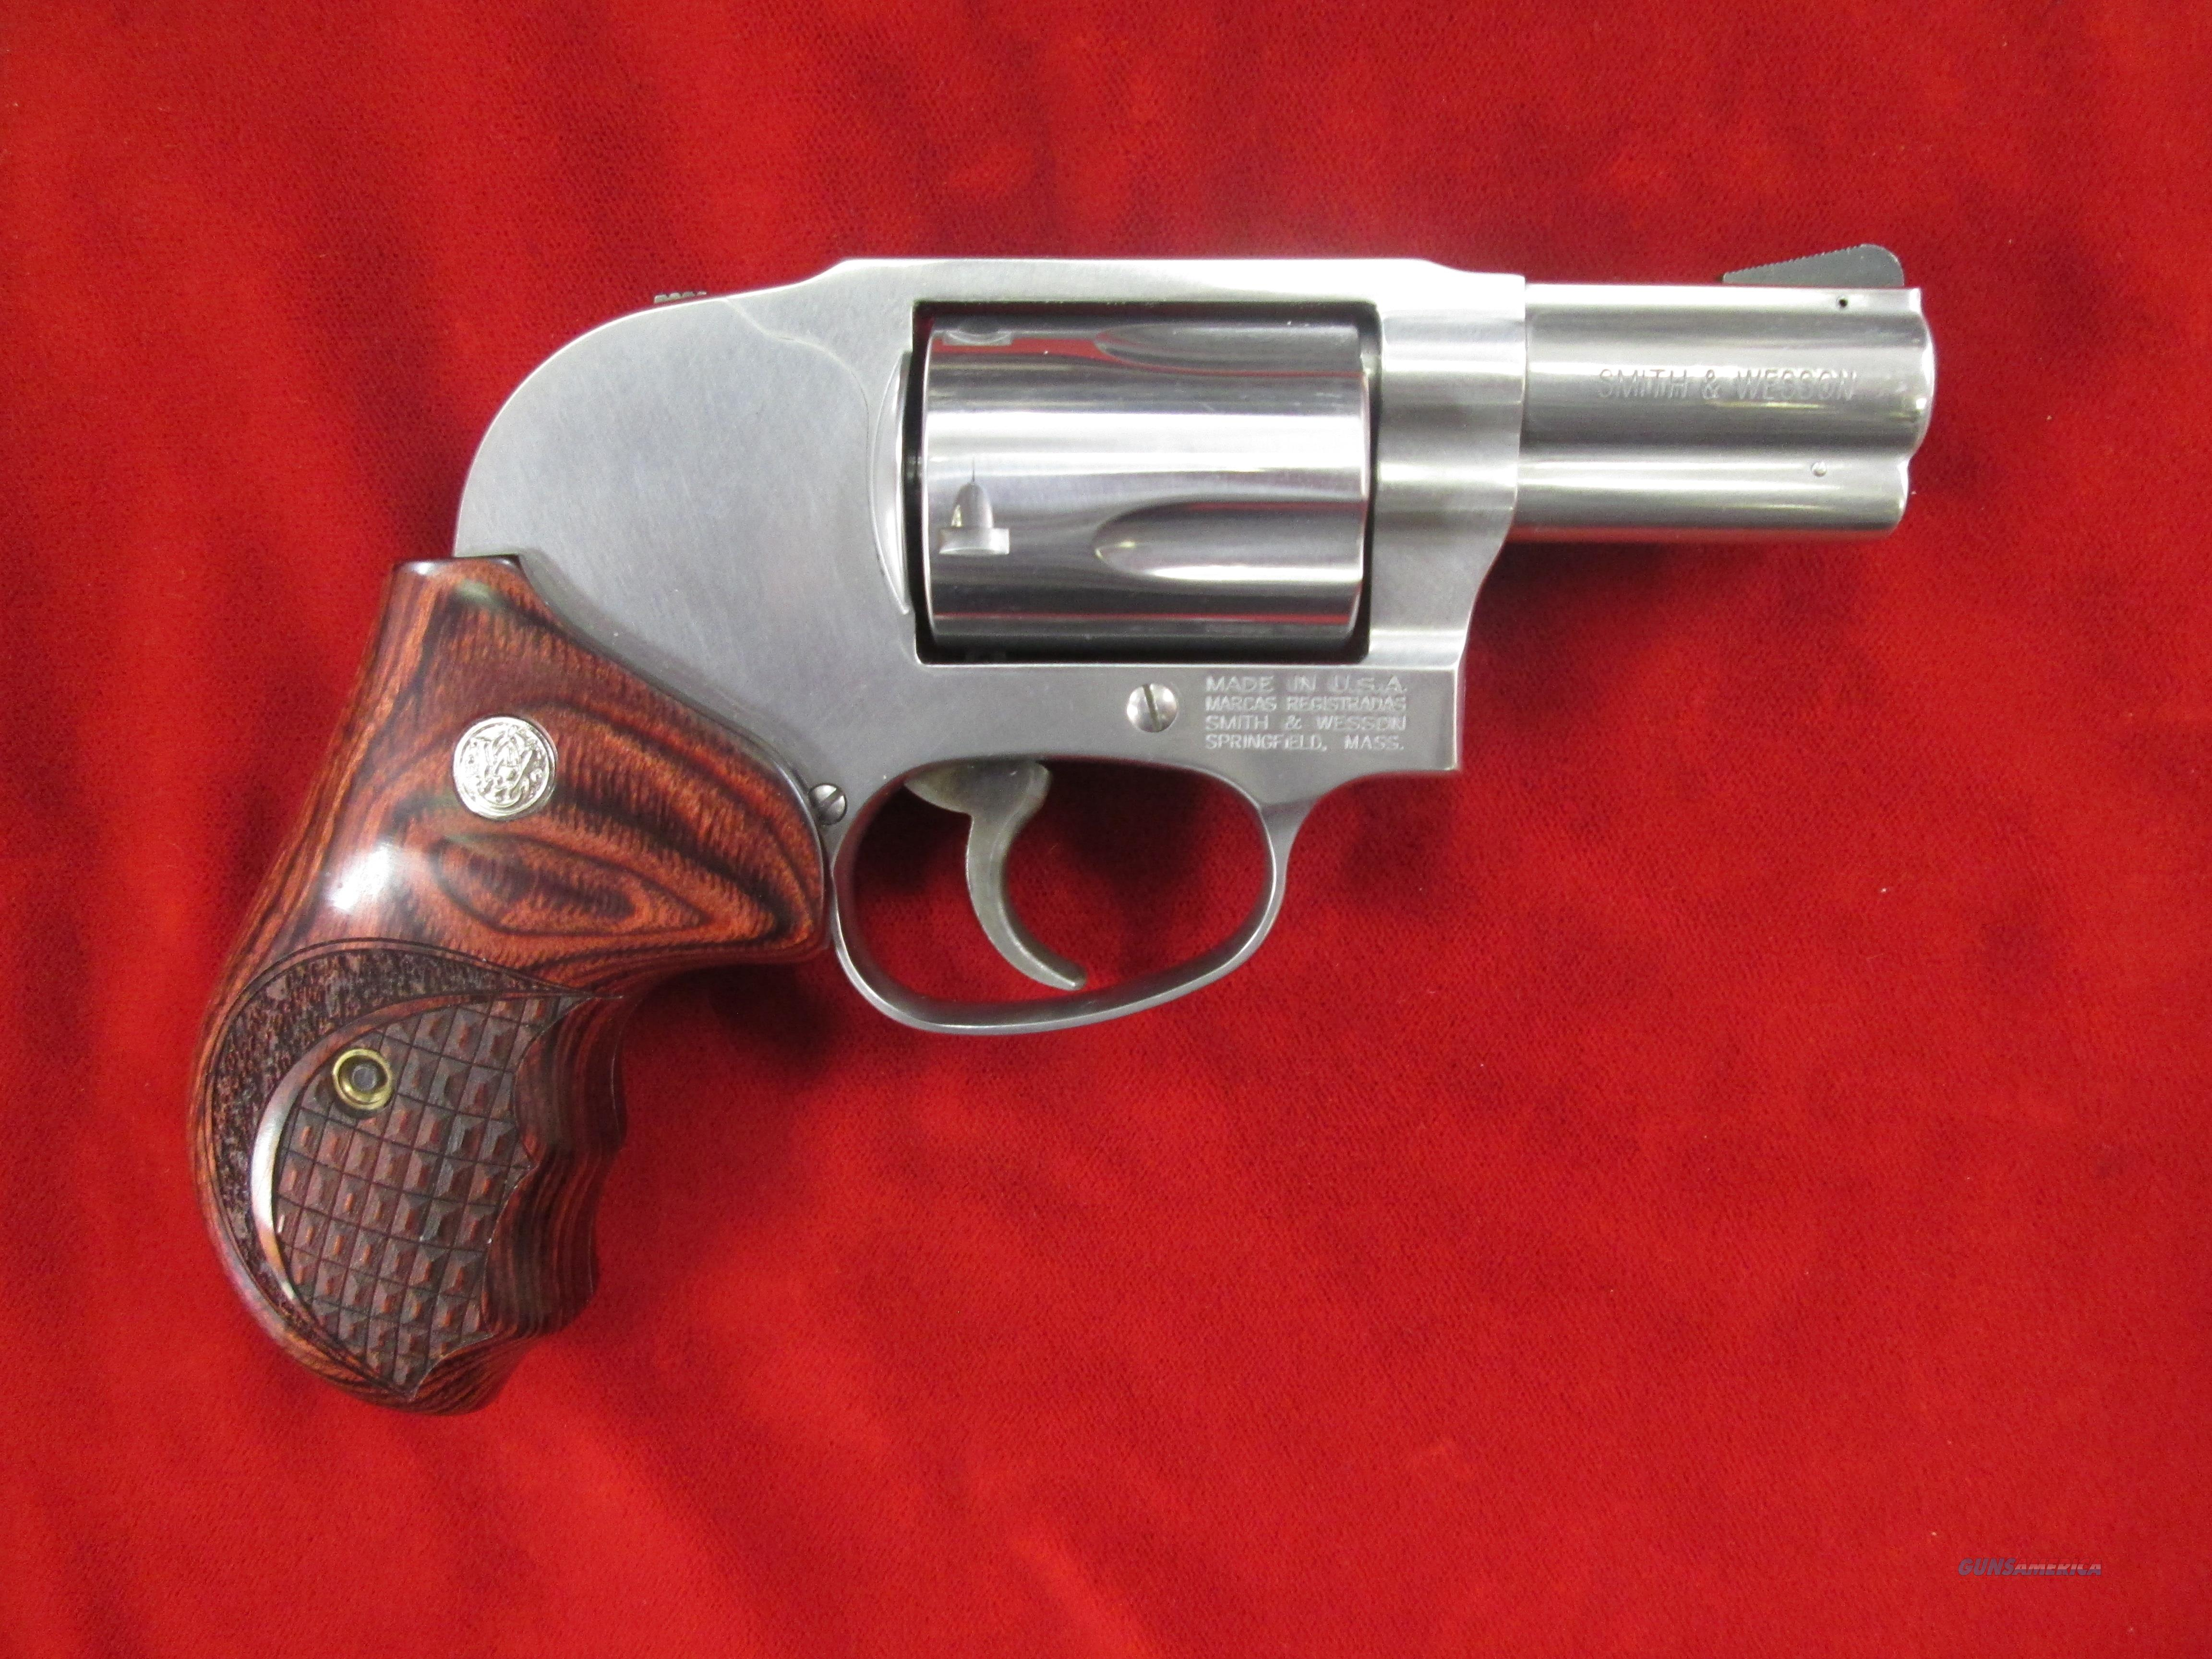 SMITH AND WESSON MODEL 649 STAINLESS  357 MAG W/ SHROUDED HAMMER AND WOOD  GRIPS NEW (163210)